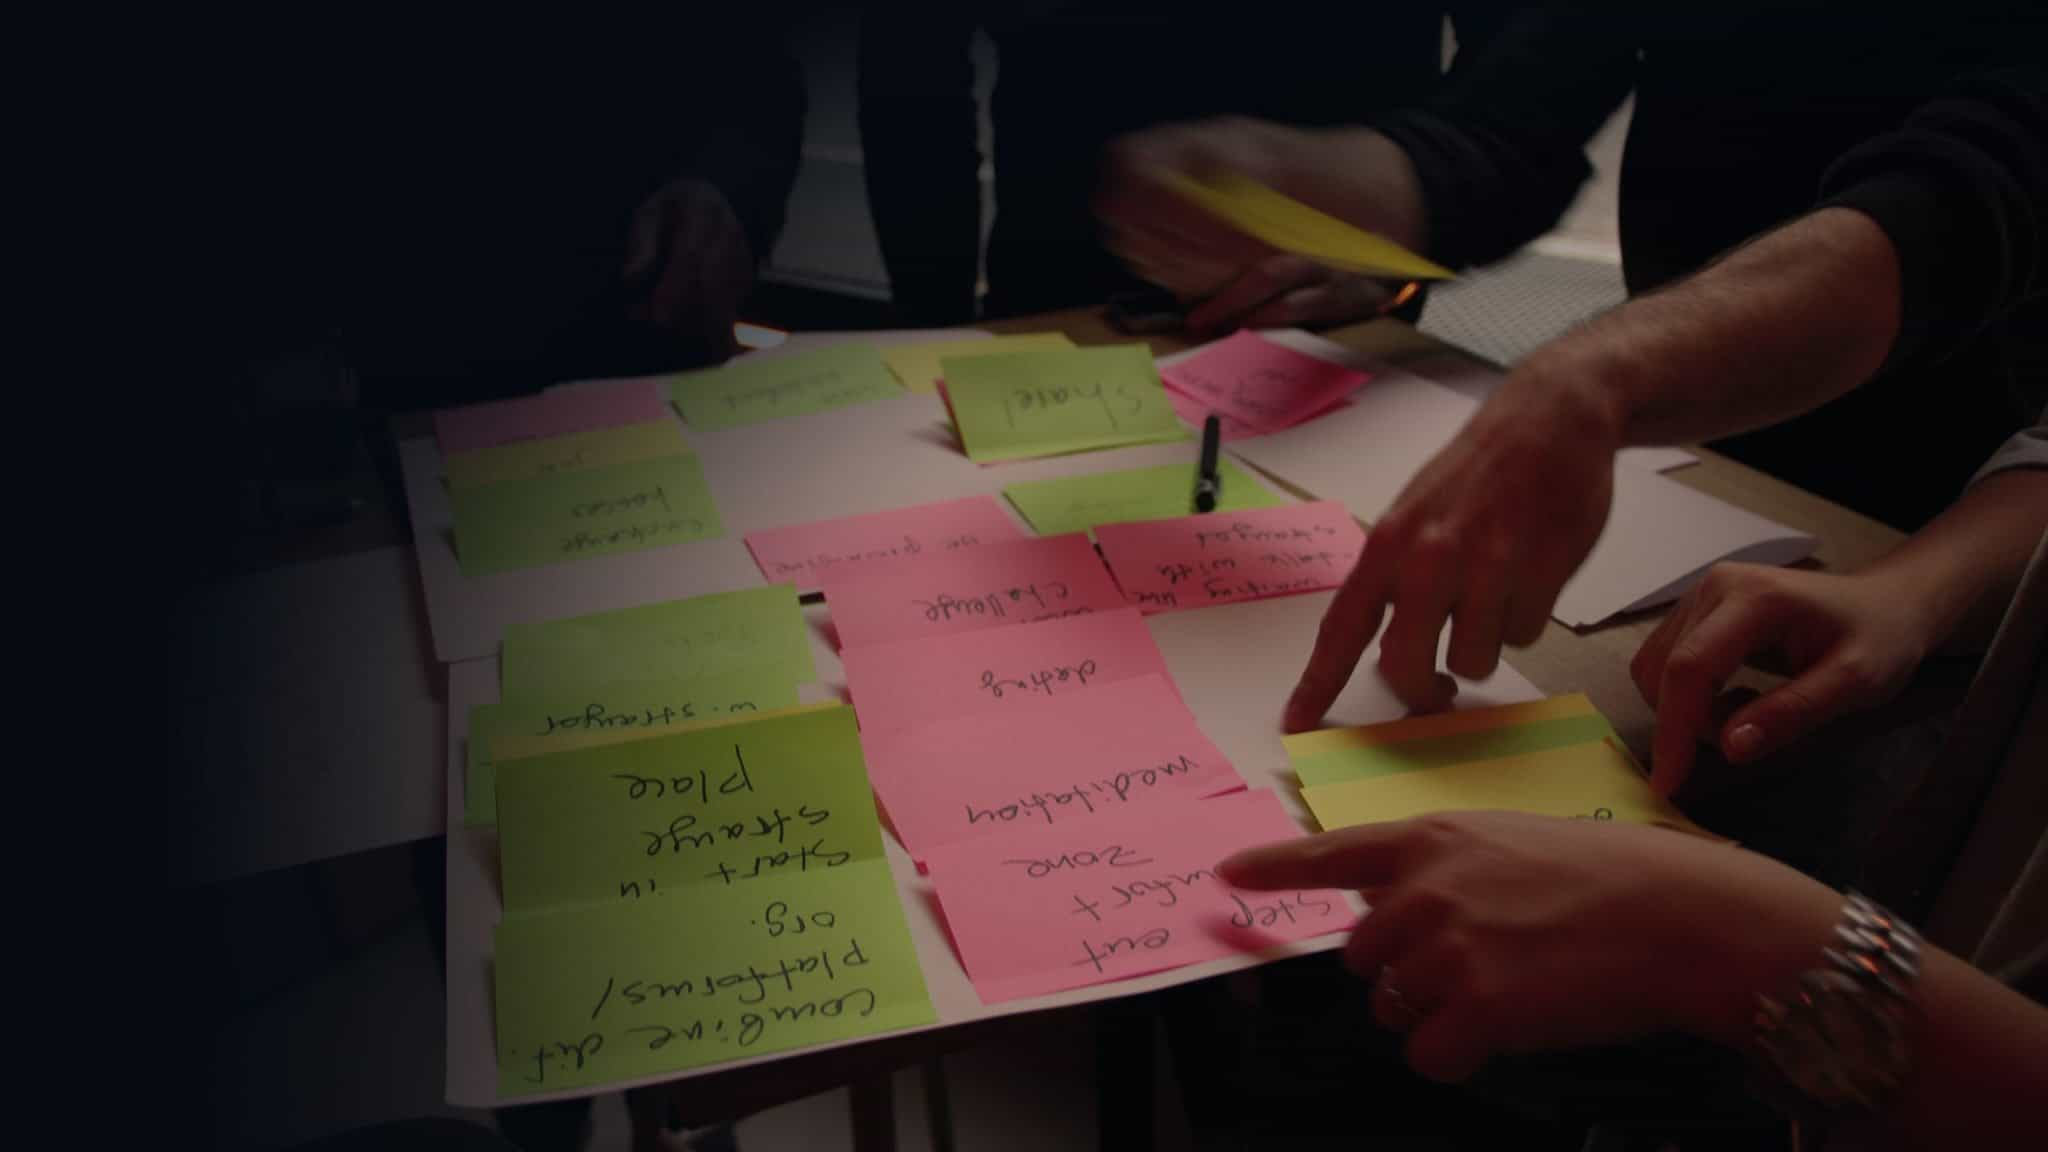 Design Thinking in practice - Brainstorming